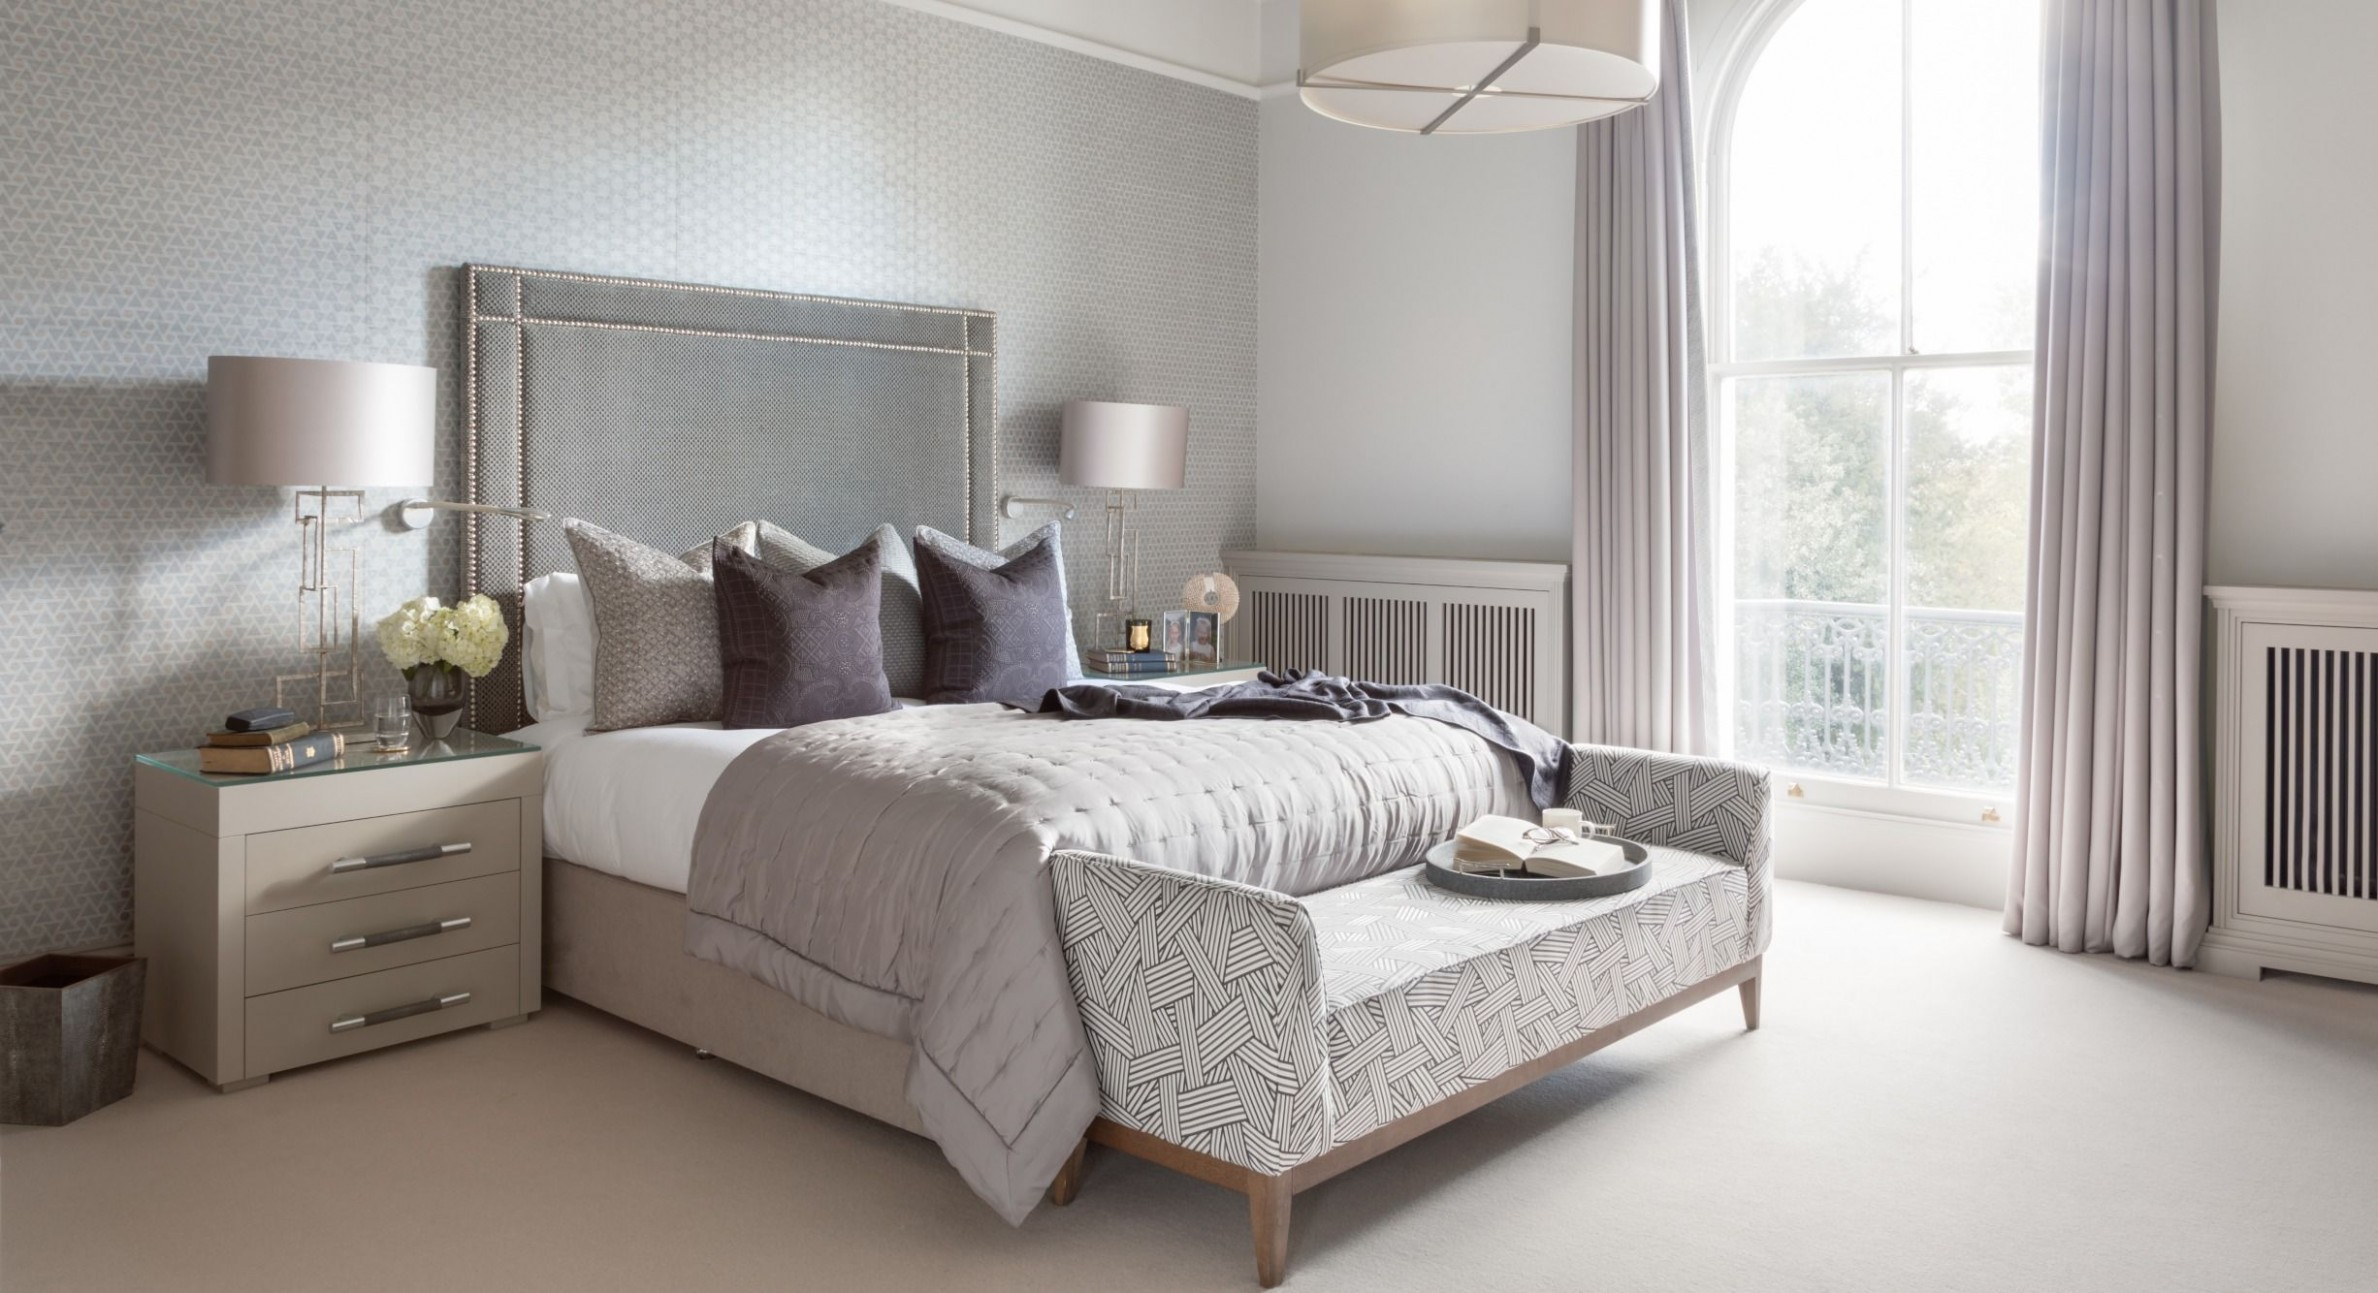 Neutral Bedroom Colour Ideas  Neutral bedrooms, Bedroom colors  - Bedroom Ideas Neutral Colors